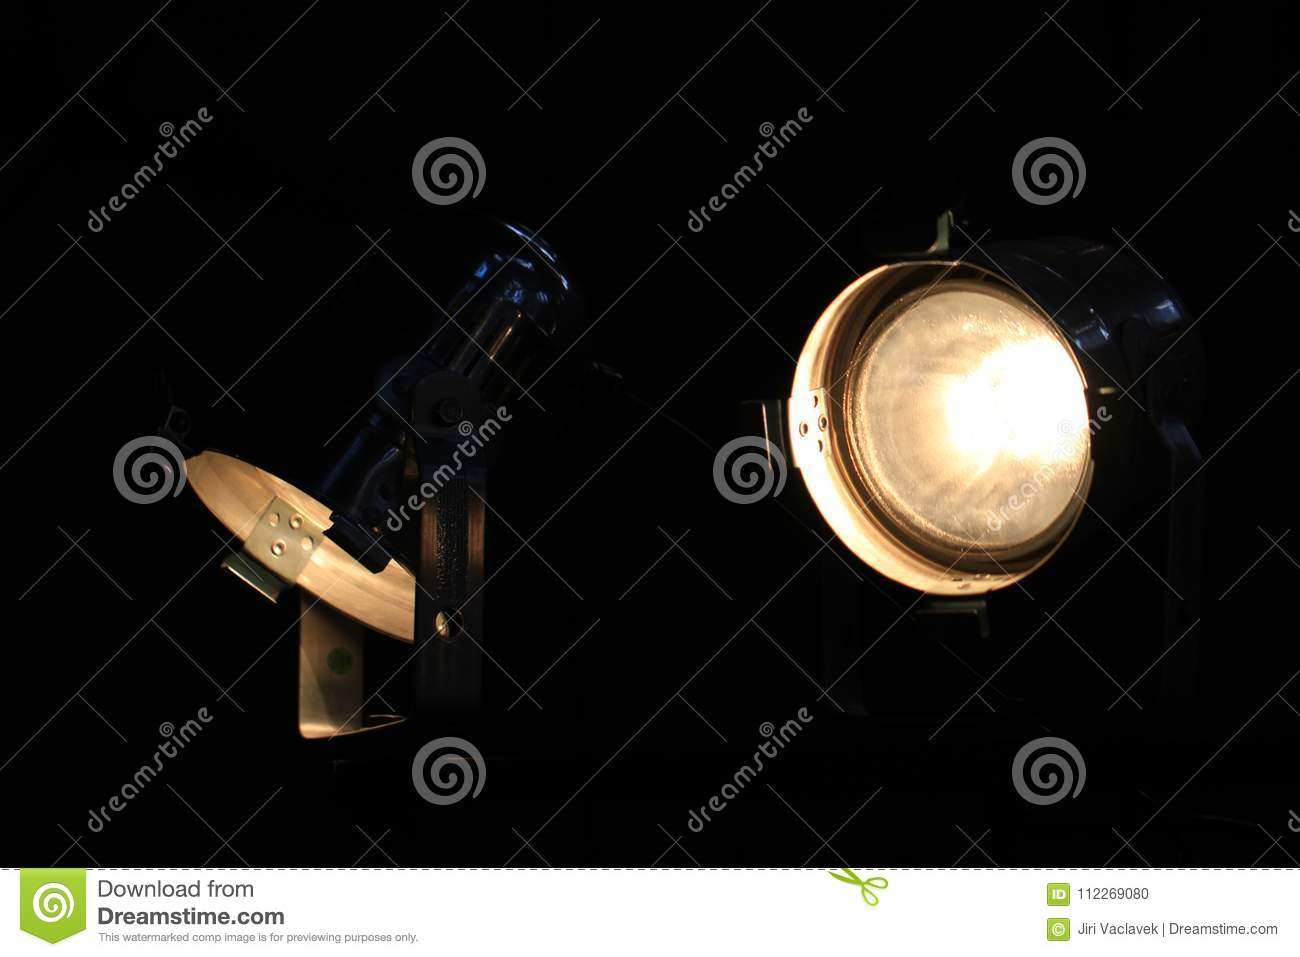 Detail of lamps from ramp stock photo  Image of night - 112269080